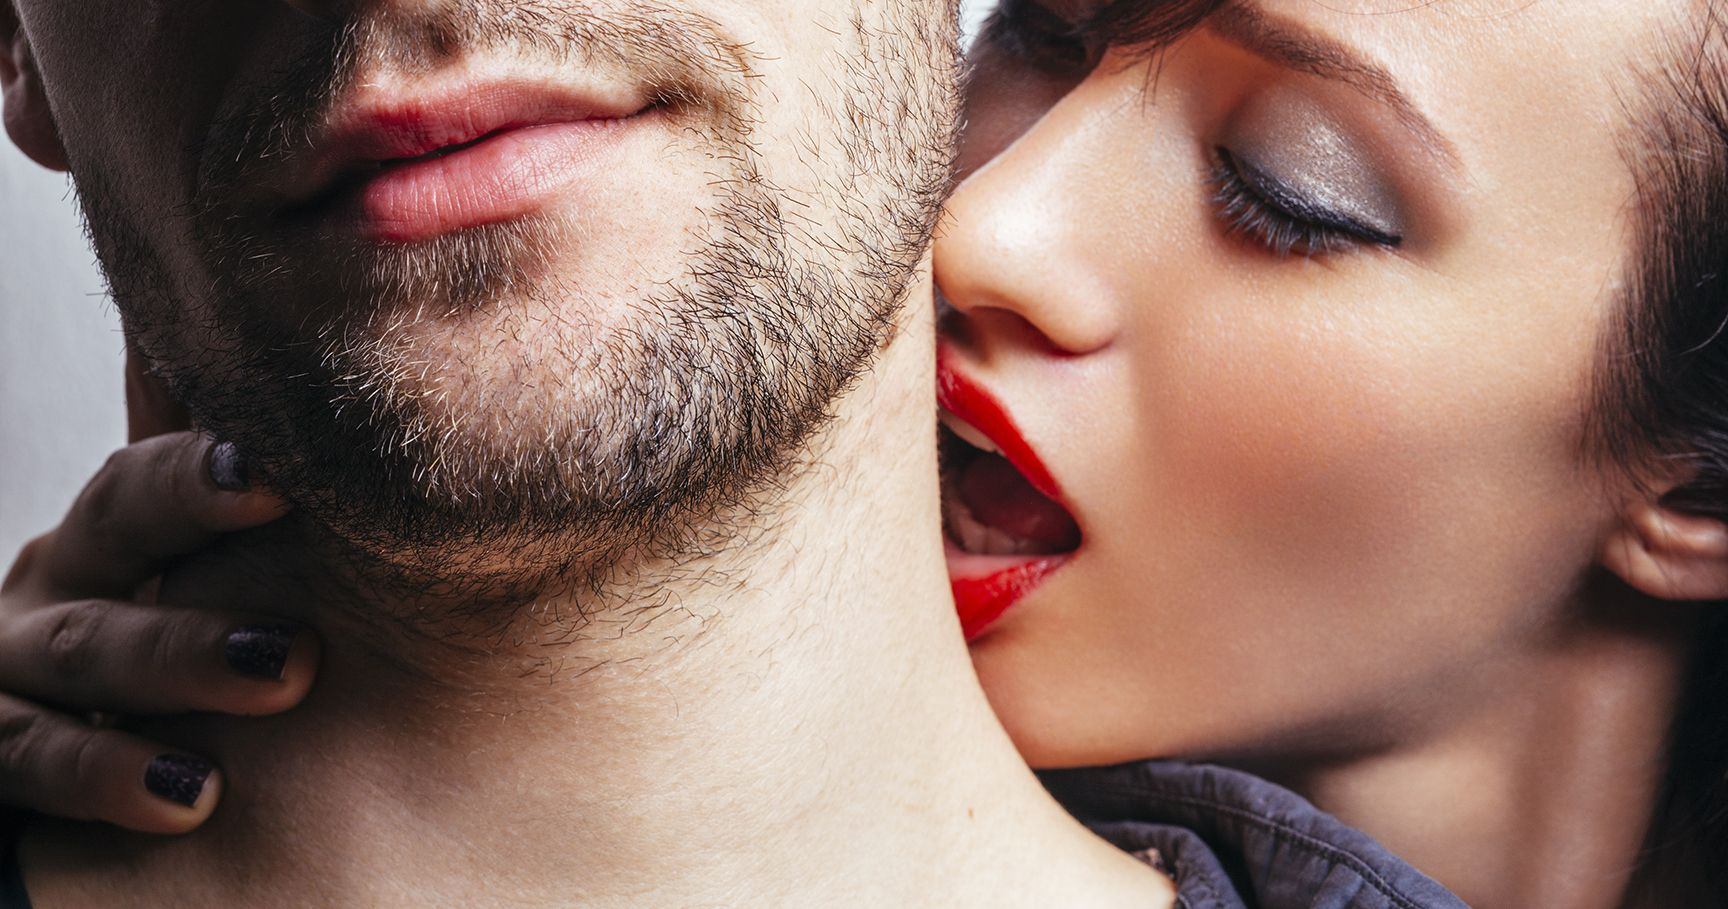 10 Erogenous Zones All Men Want to Be Touched